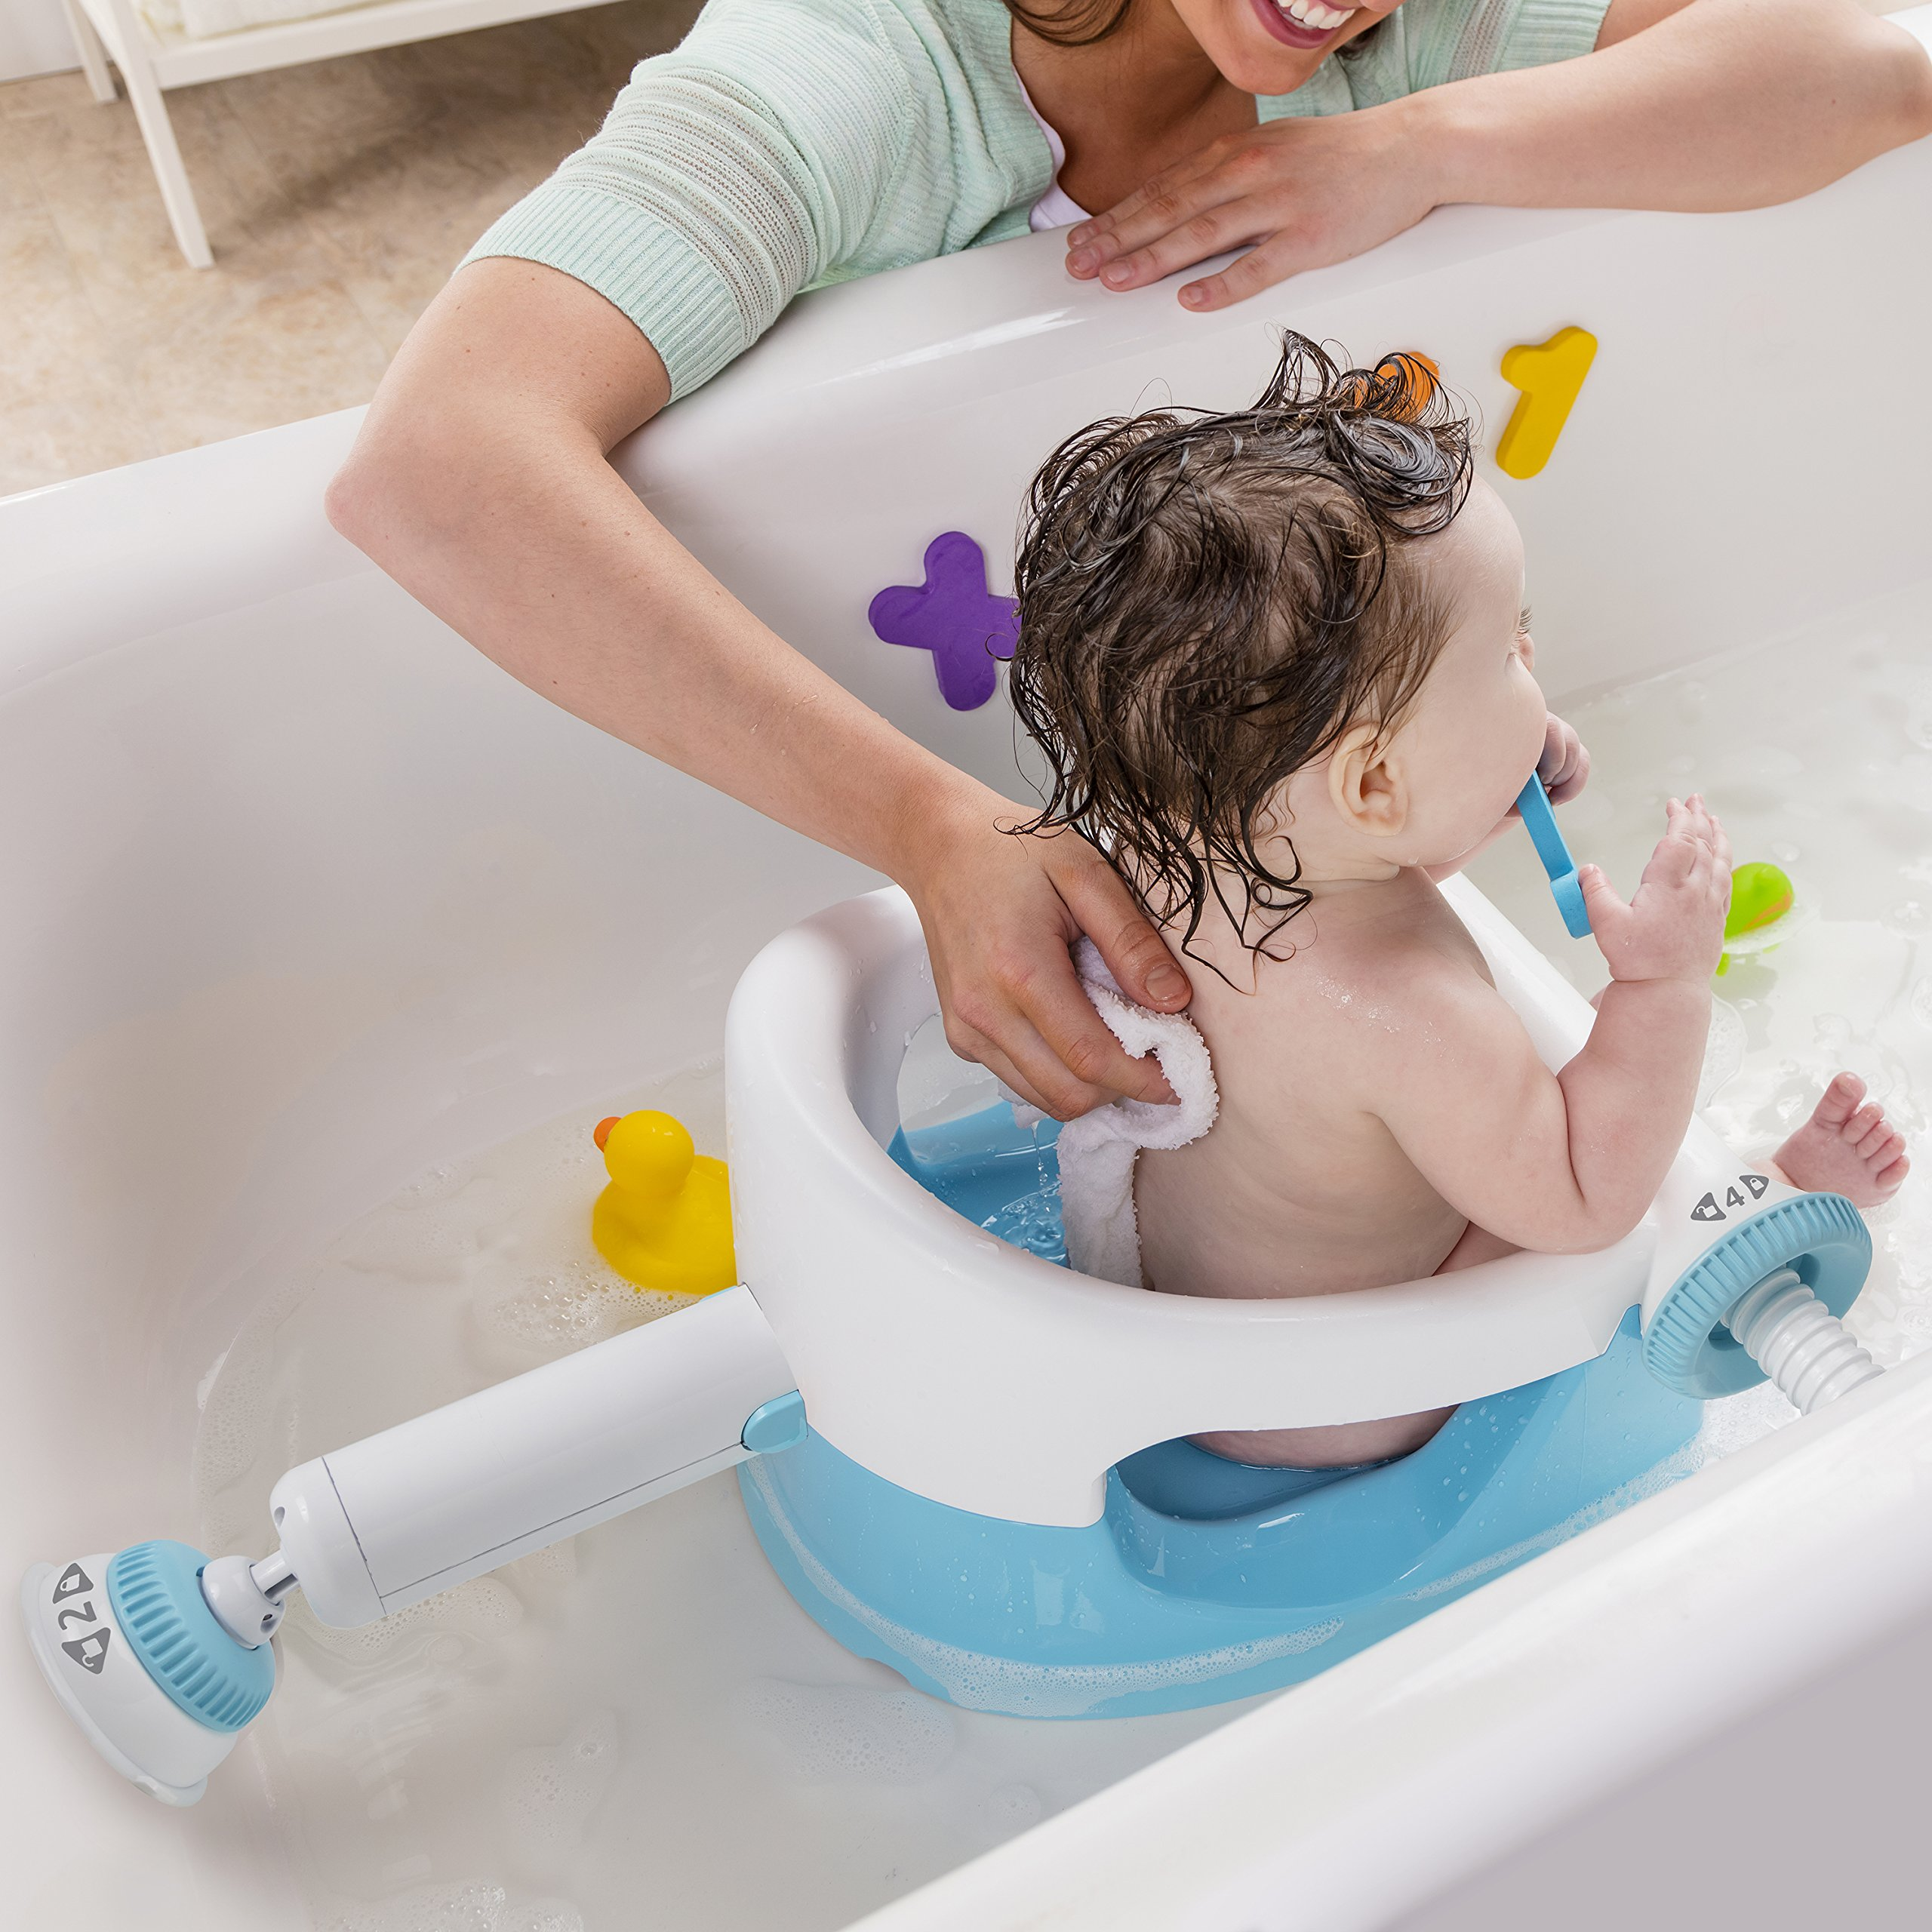 Summer Infant My Bath Seat, Baby Bathtub Seat for Sit-Up Bathing with Backrest Support and Suction Cups for Stability by Summer Infant (Image #5)